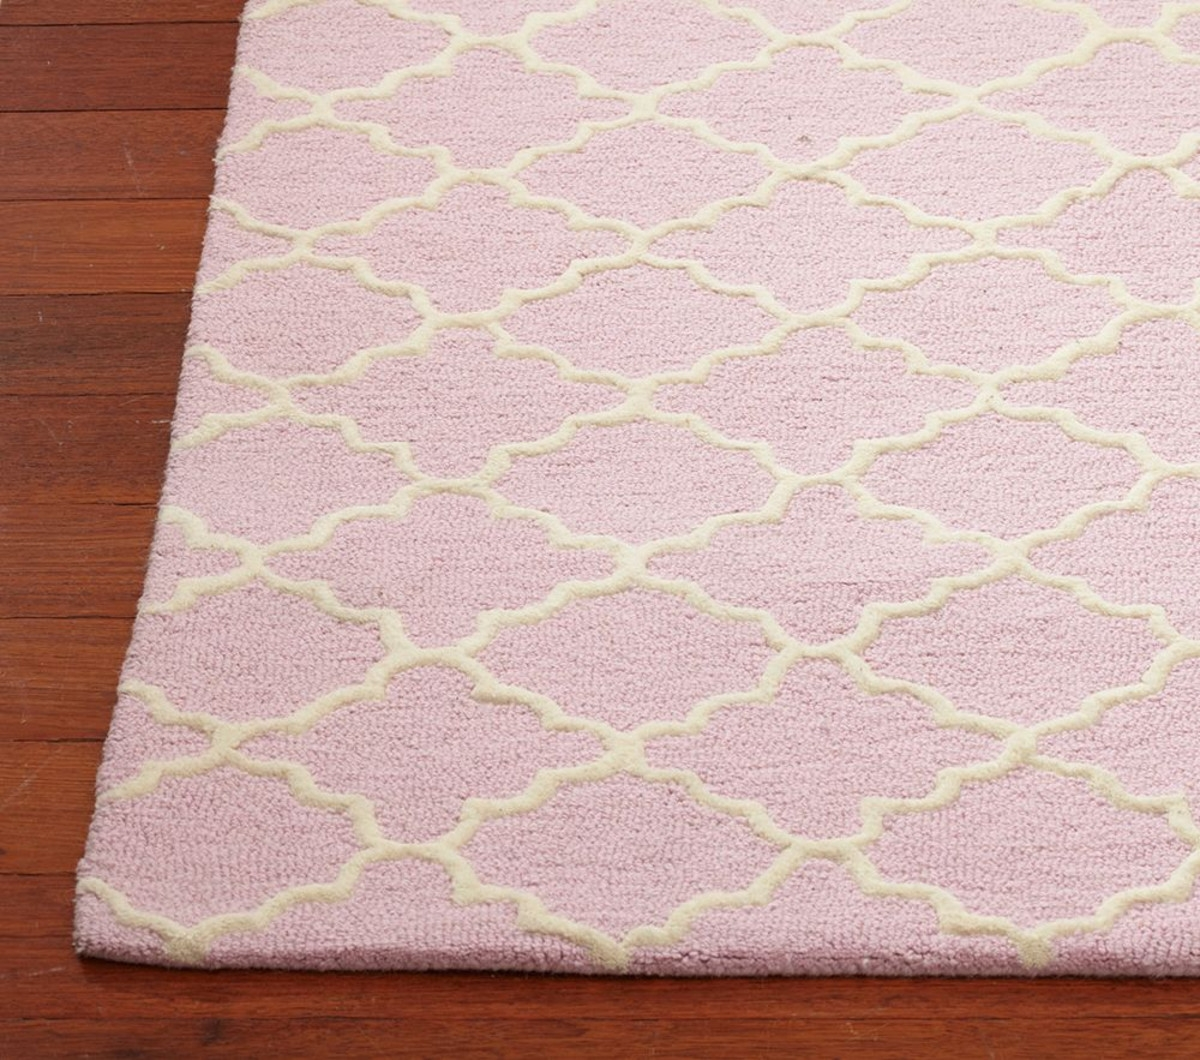 Addison Rug Light Pink Pottery Barn Nursery Pinterest Barn Throughout Pink Pattern Rugs (Image 4 of 15)